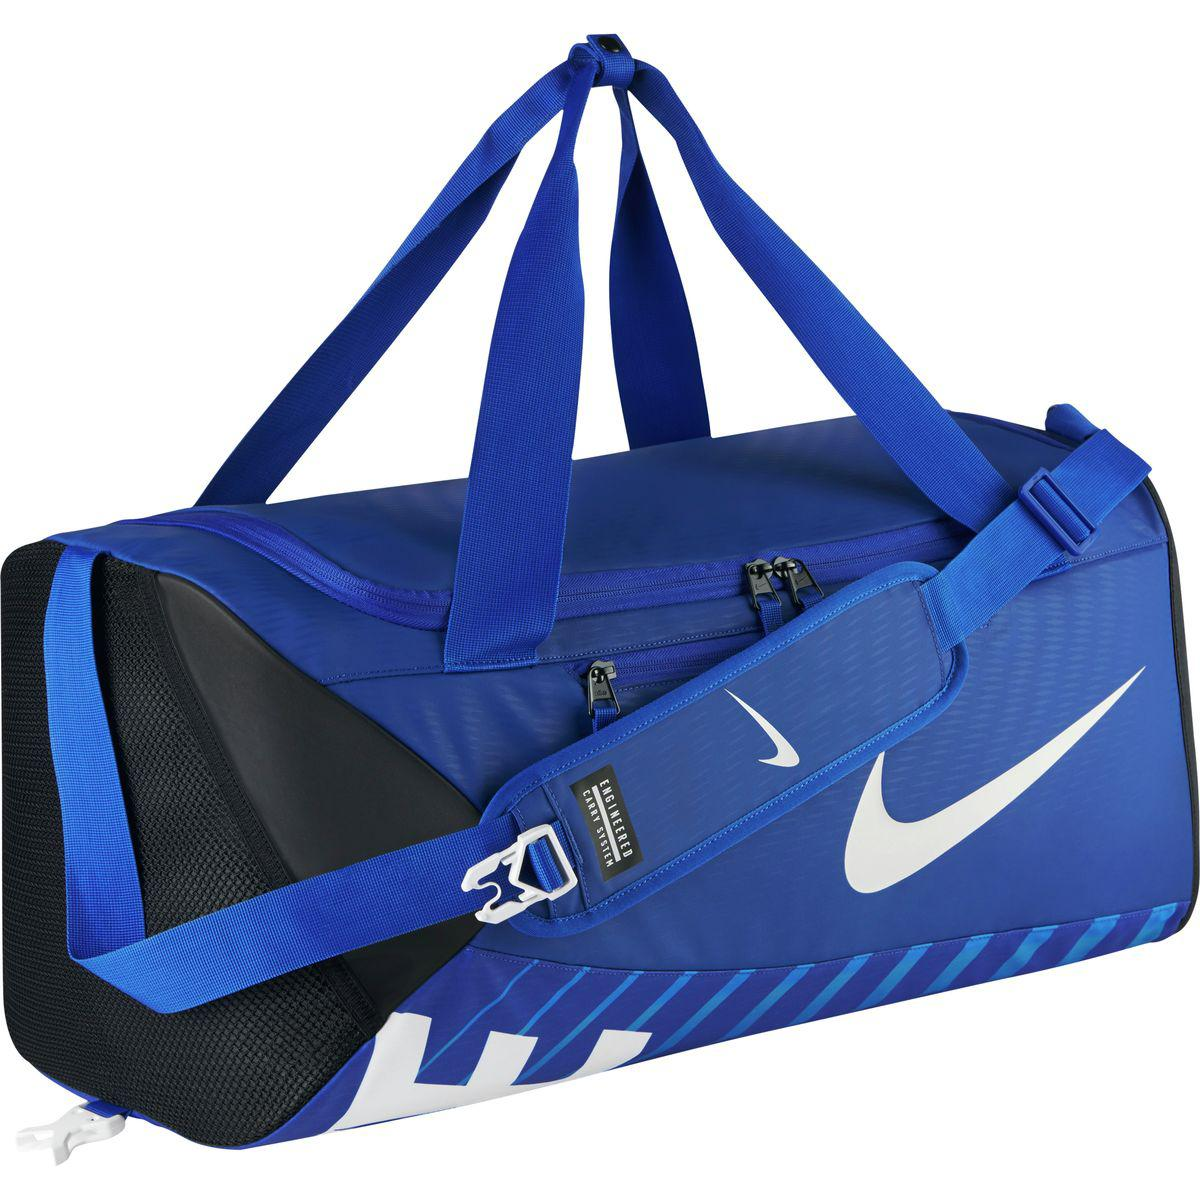 Lyst - Nike Alpha Adapt Cross Body (medium) Duffel Bag (blue) in ... e5f1287188d4f